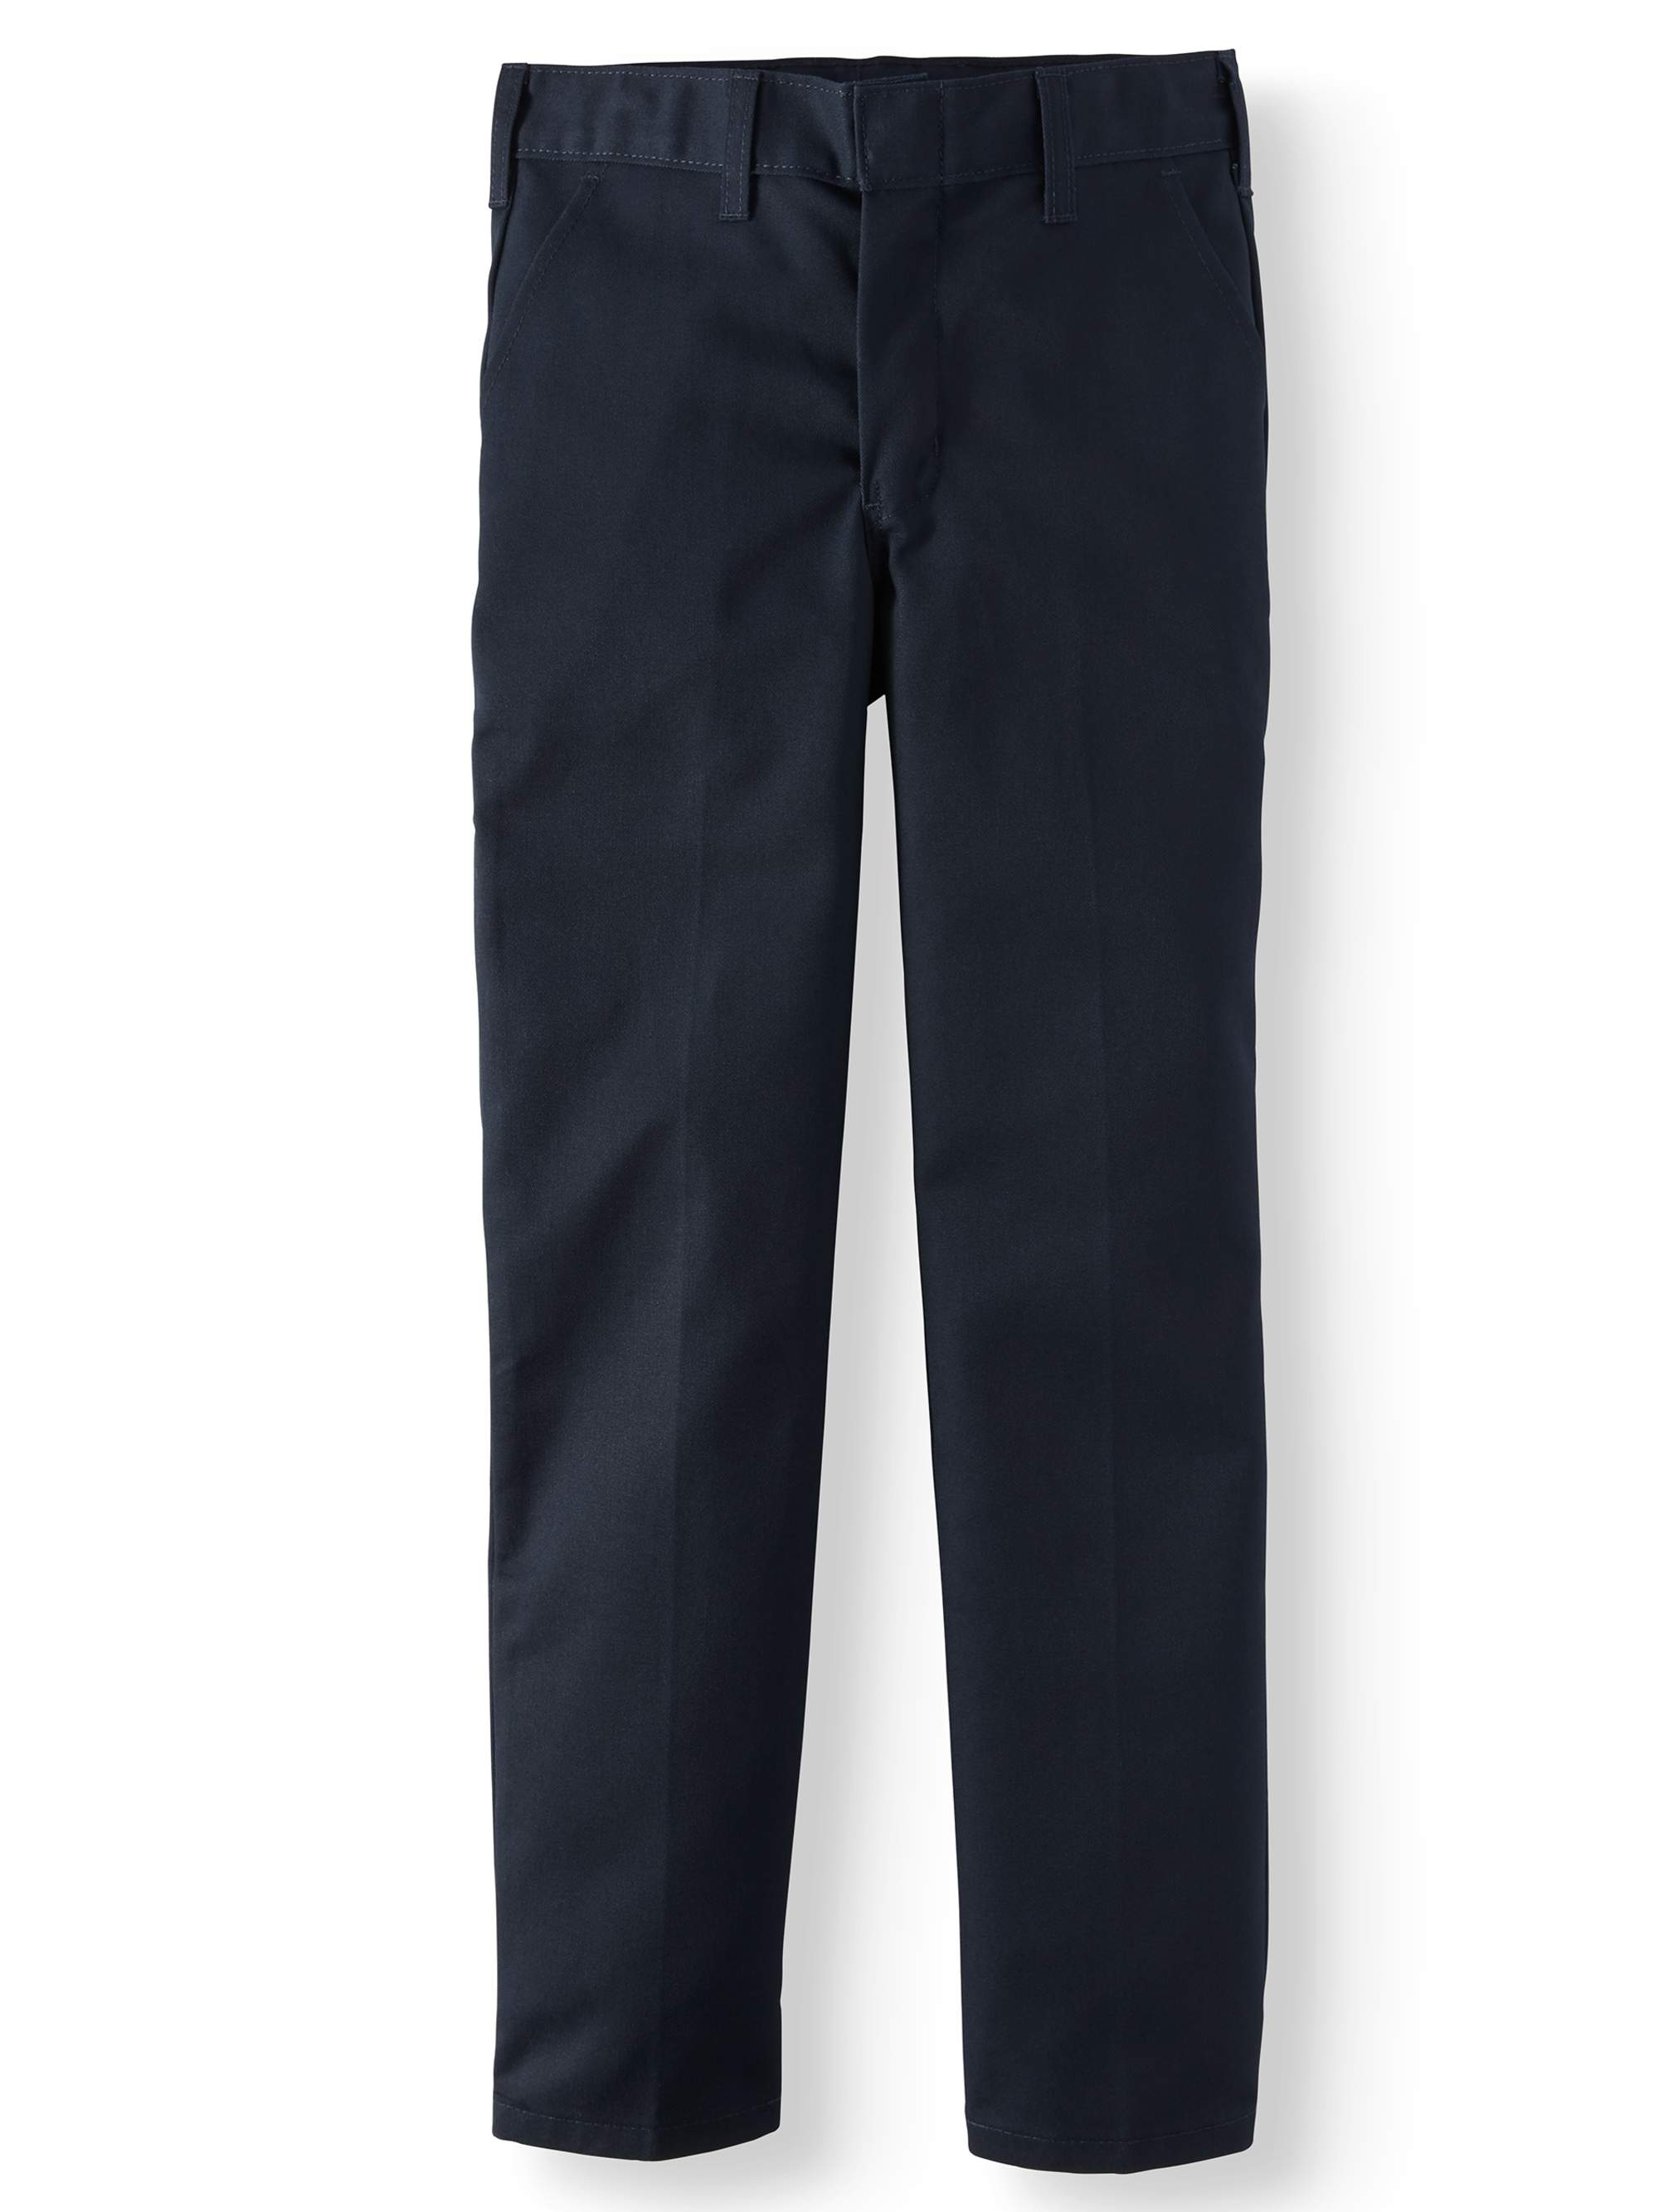 Boys' Slim Fit Cell Phone Pocket Pants